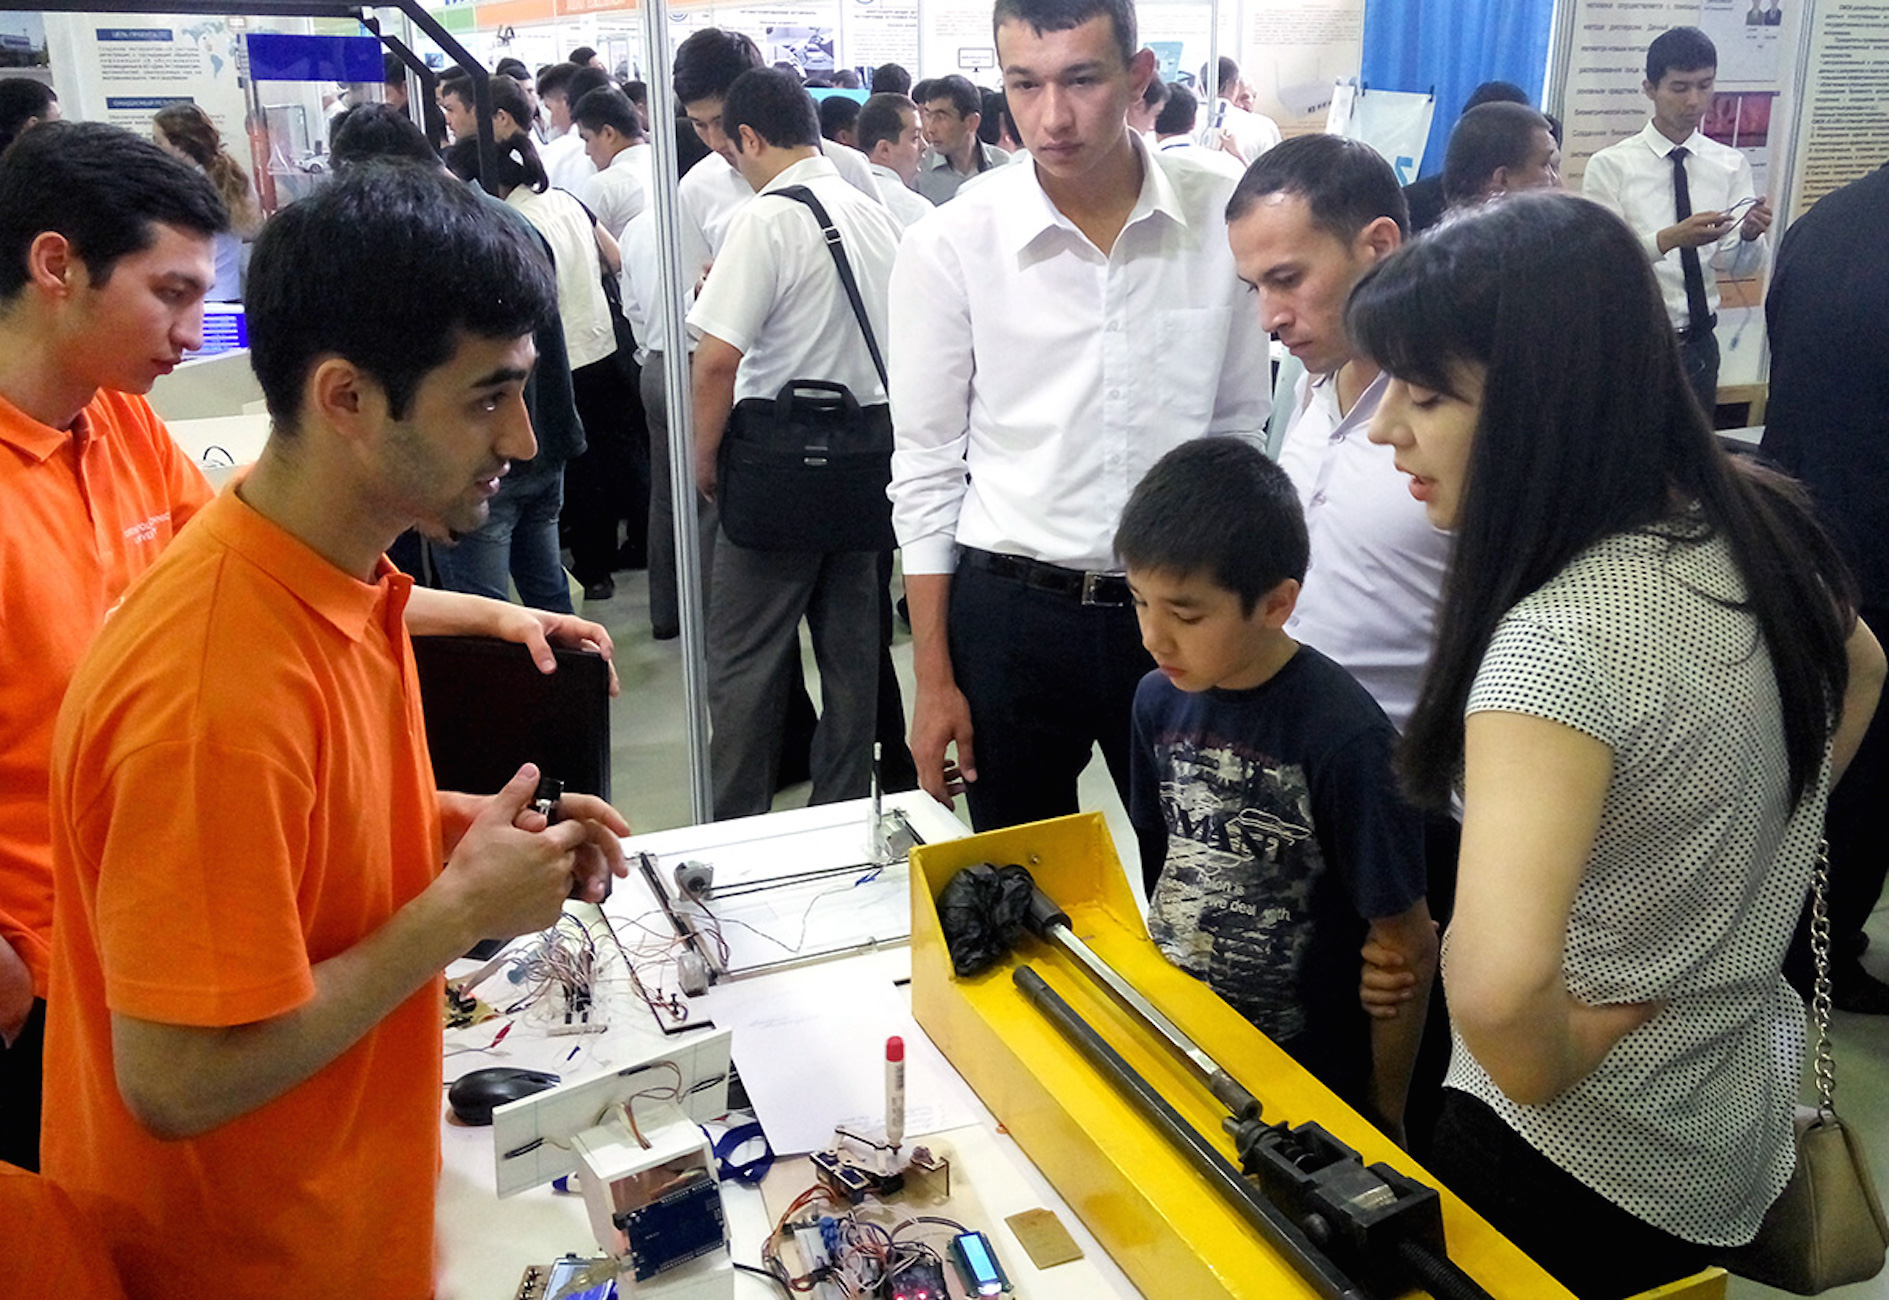 Students at Inha University in Tashkent demonstrate the robots that they made at a Tashkent exhibition May 13, 2016. [Maksim Yeniseyev]